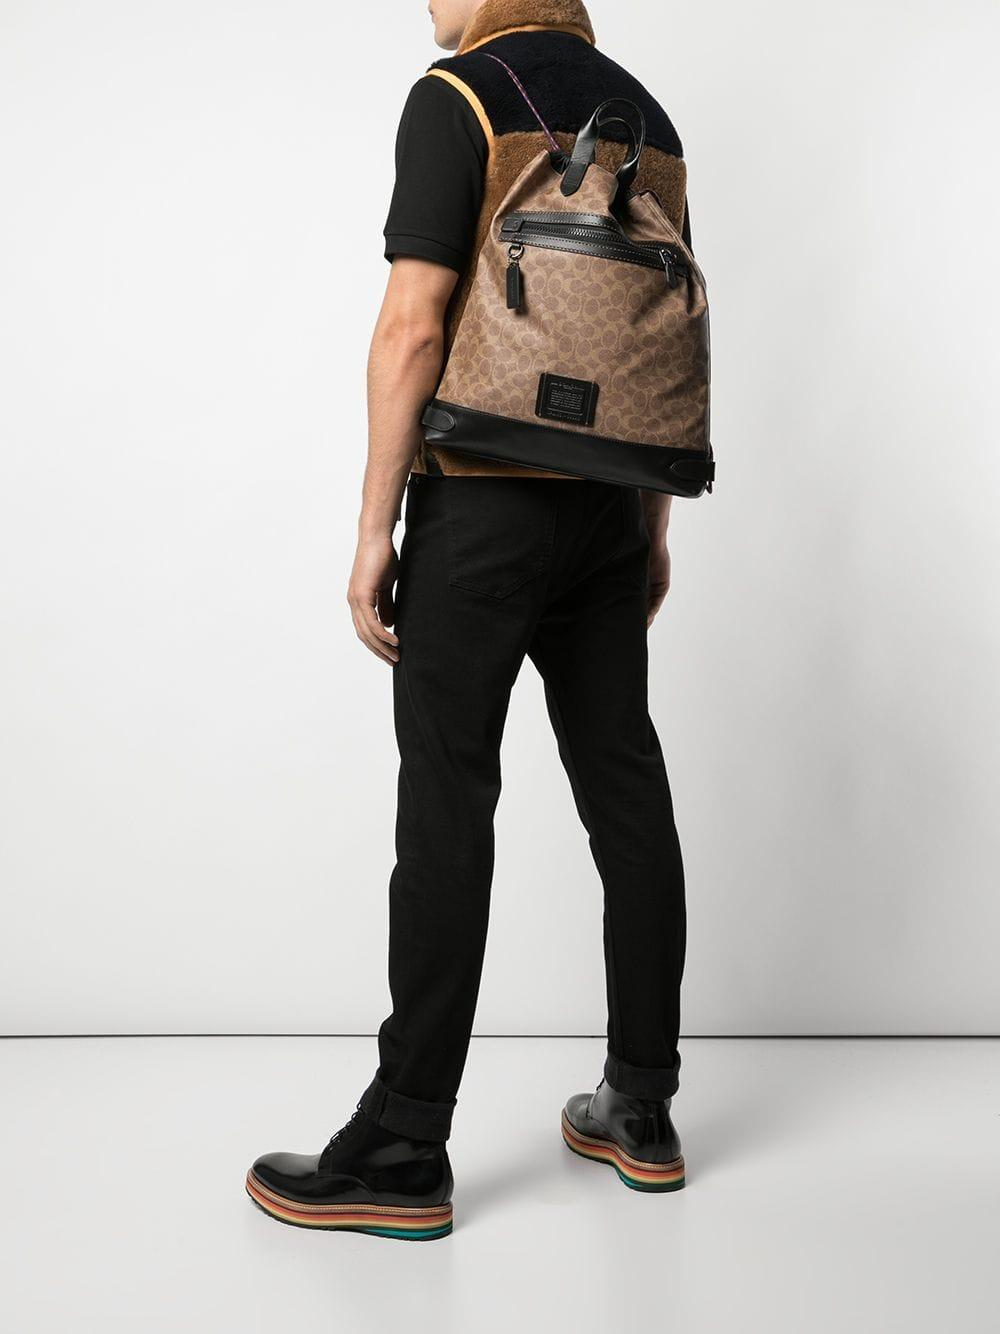 COACH Leather Academy Drawstring Backpack in Brown for Men - Lyst